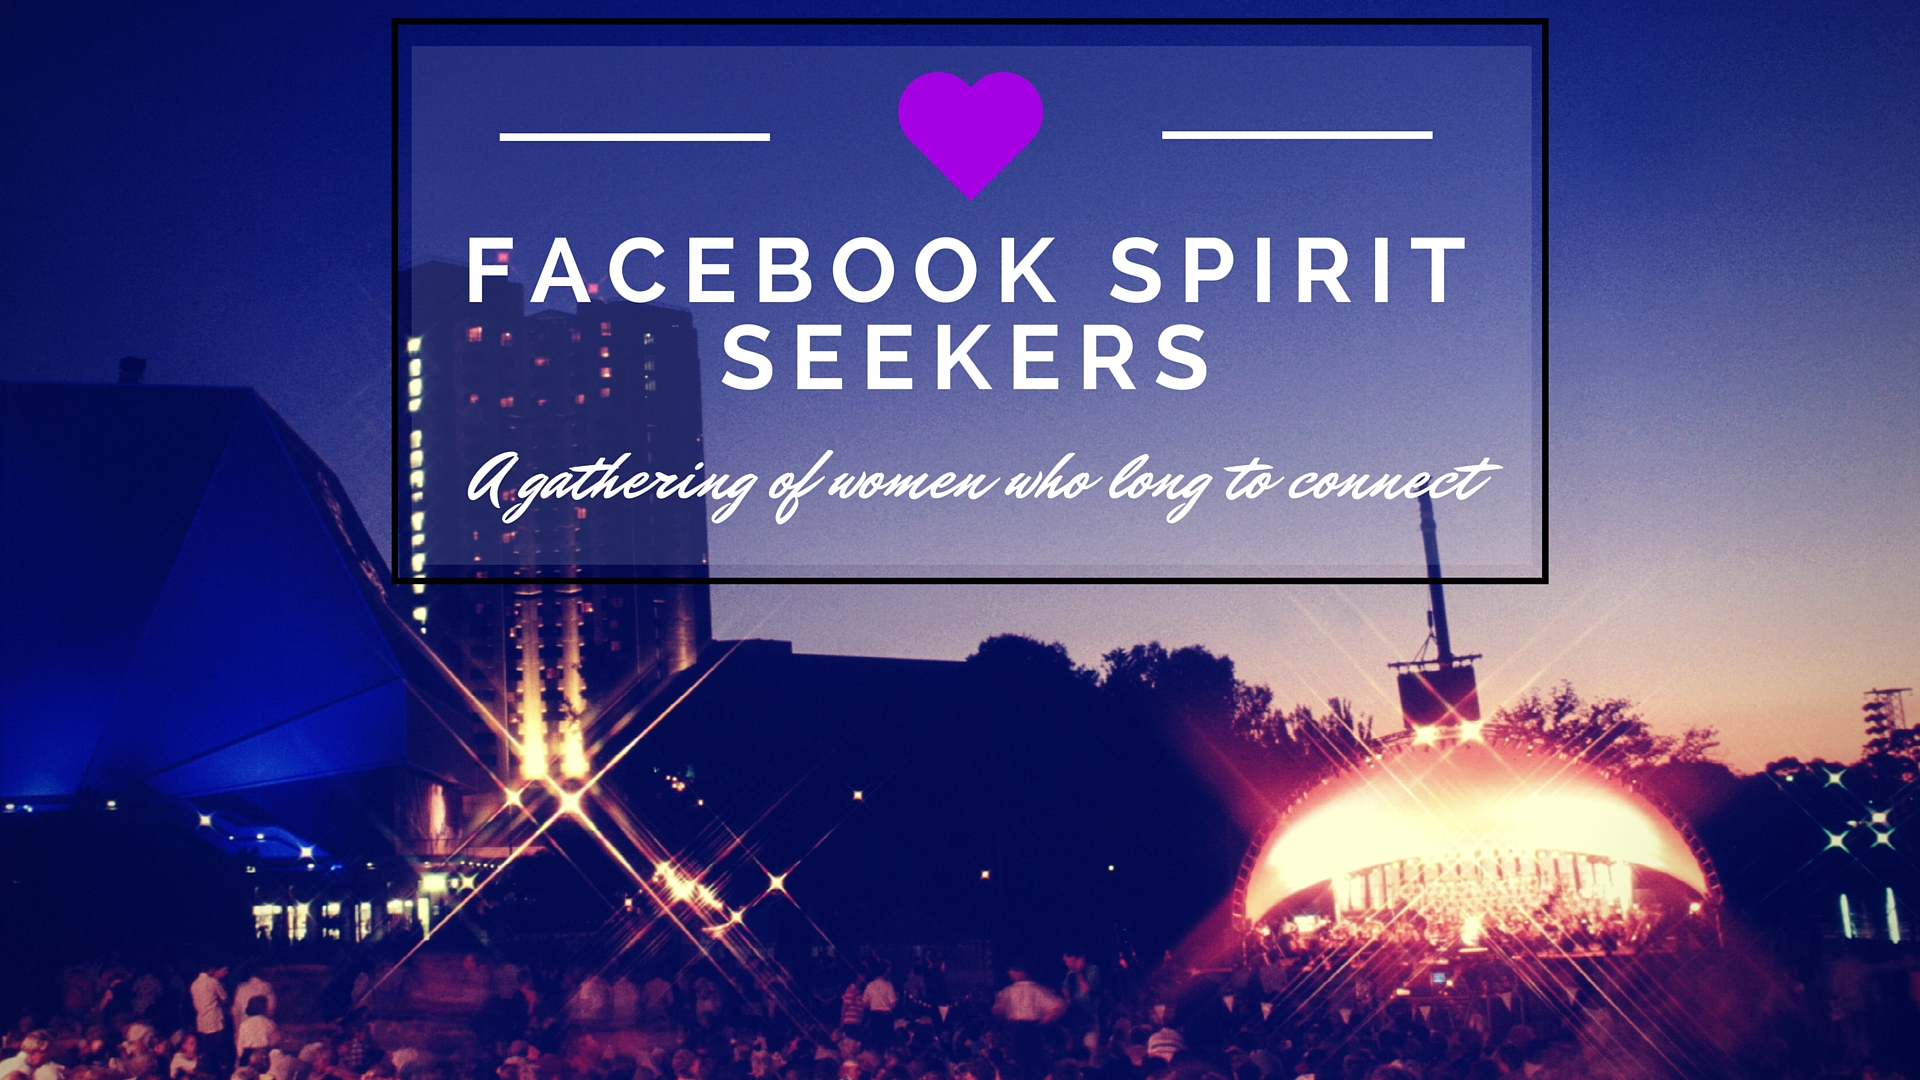 Facebooke Spirit Seekers